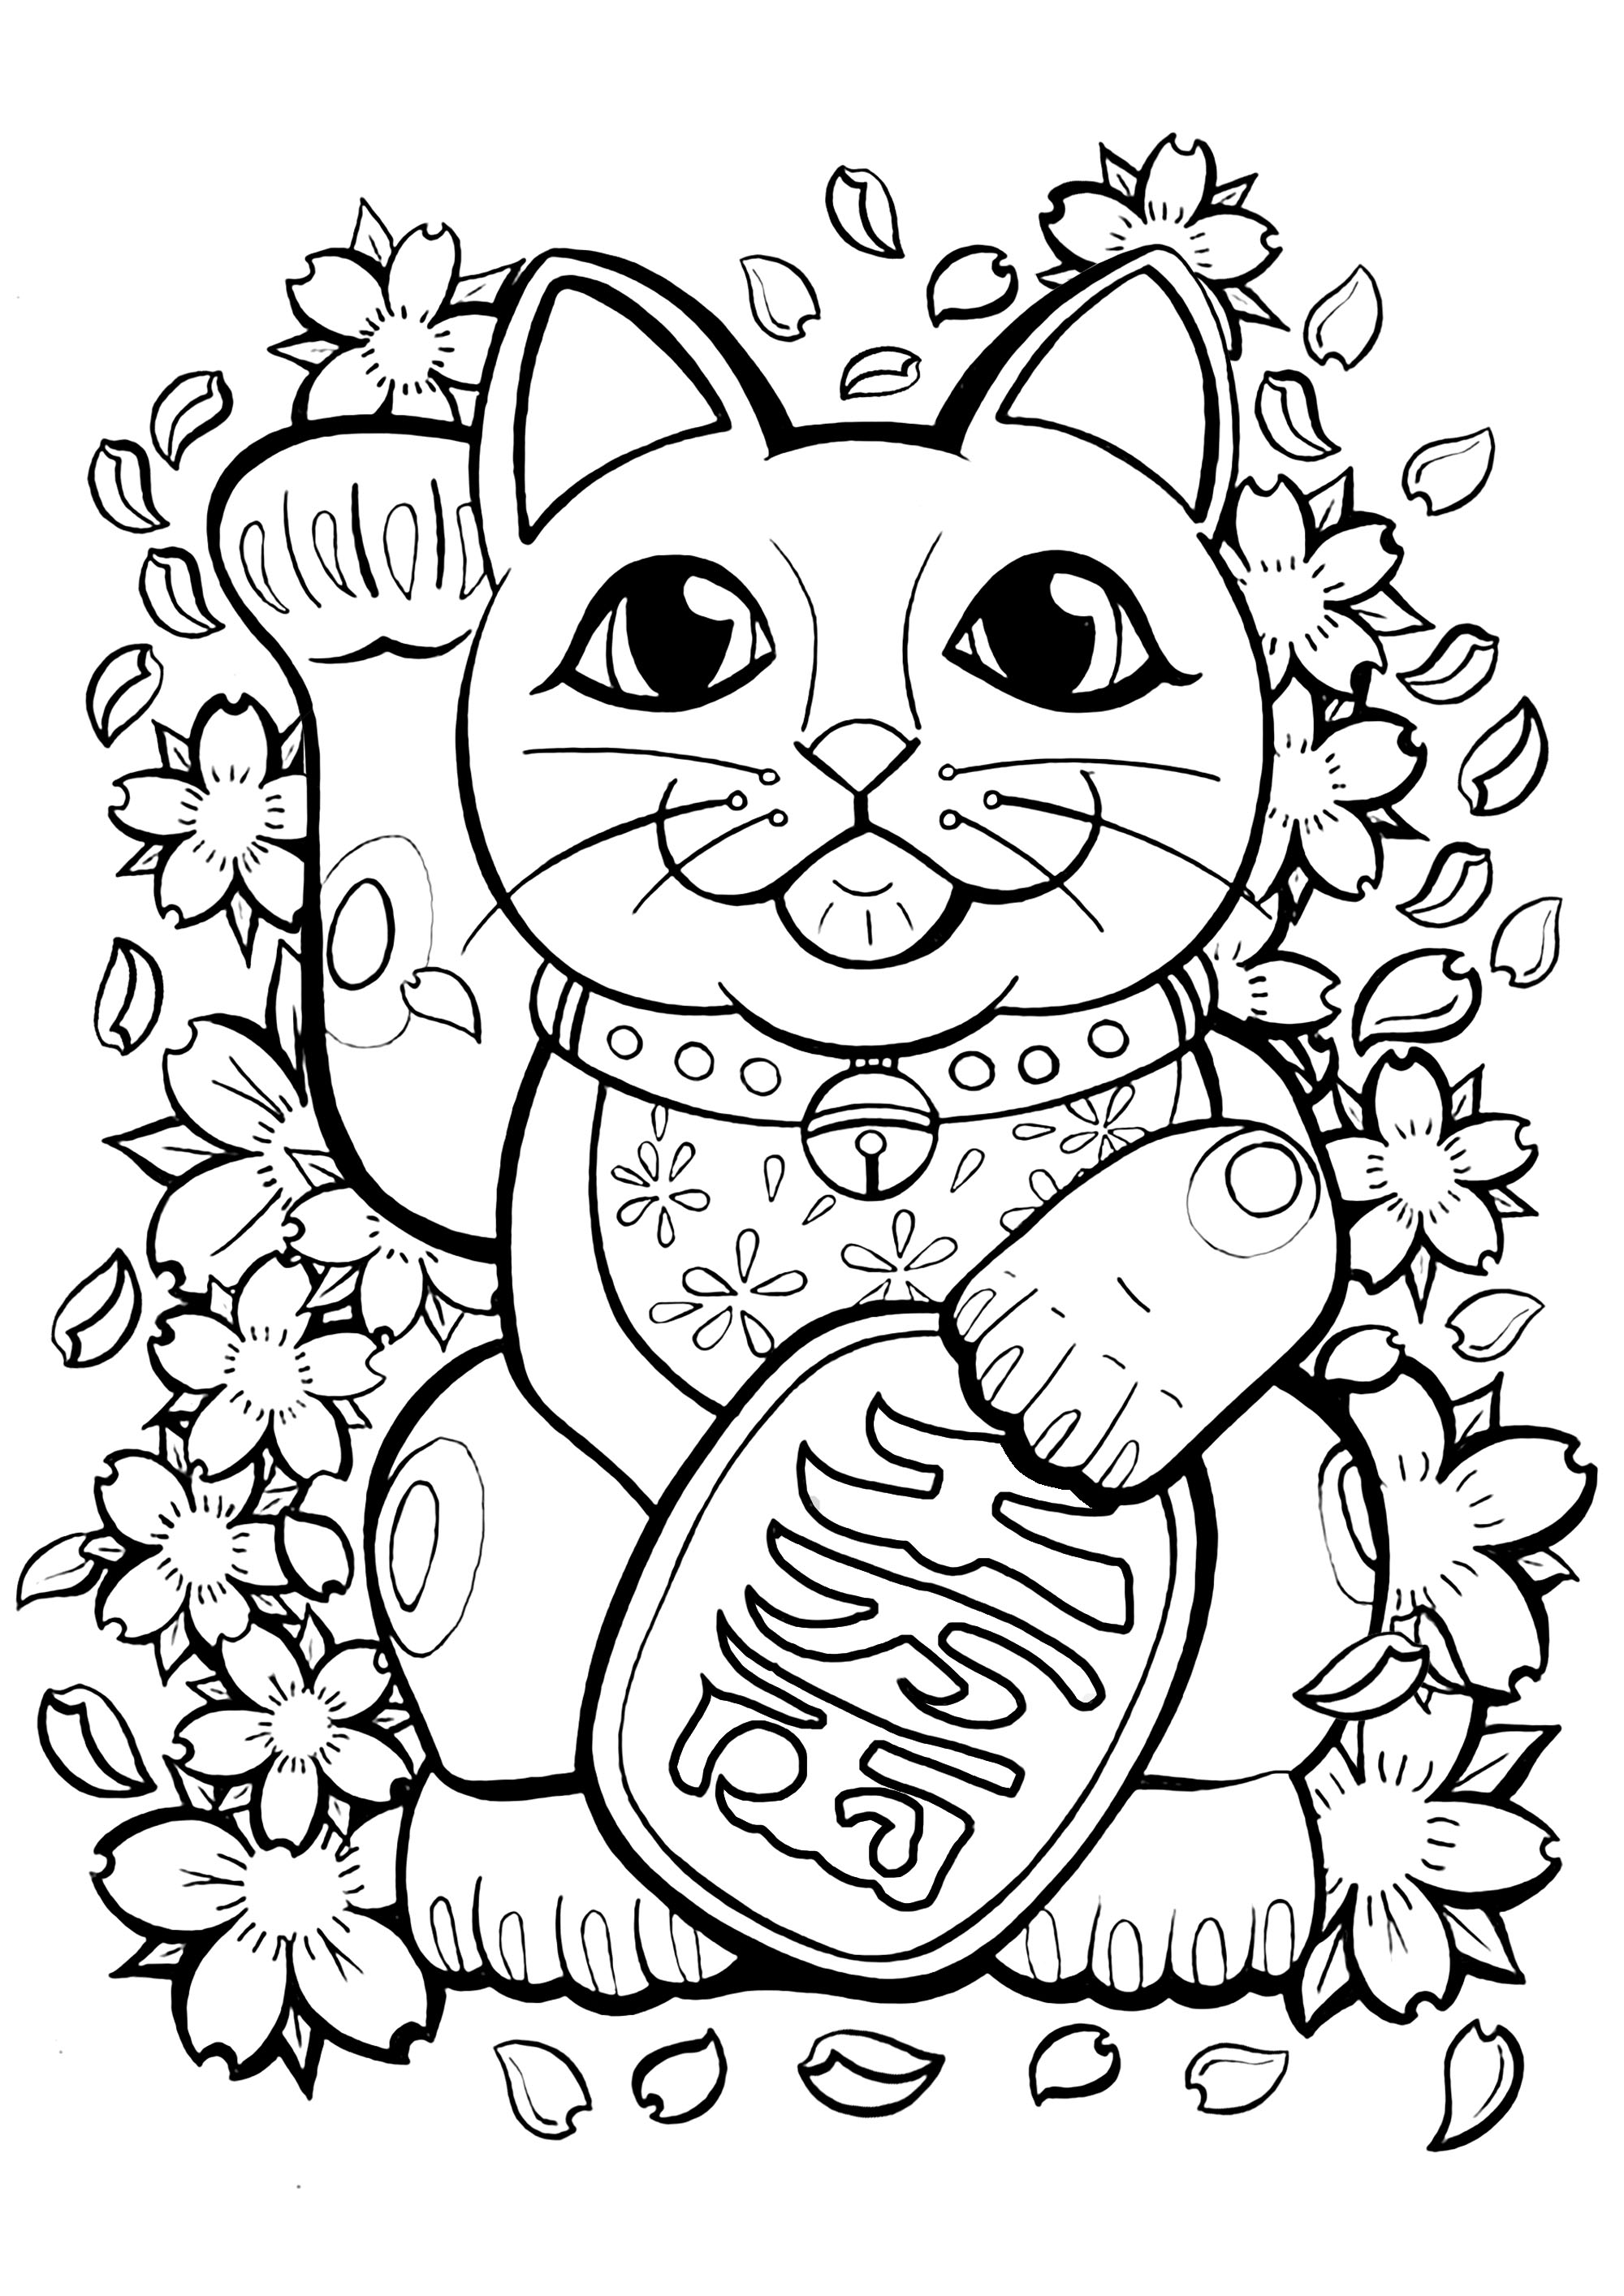 Maneki Neko with flowers and leaves